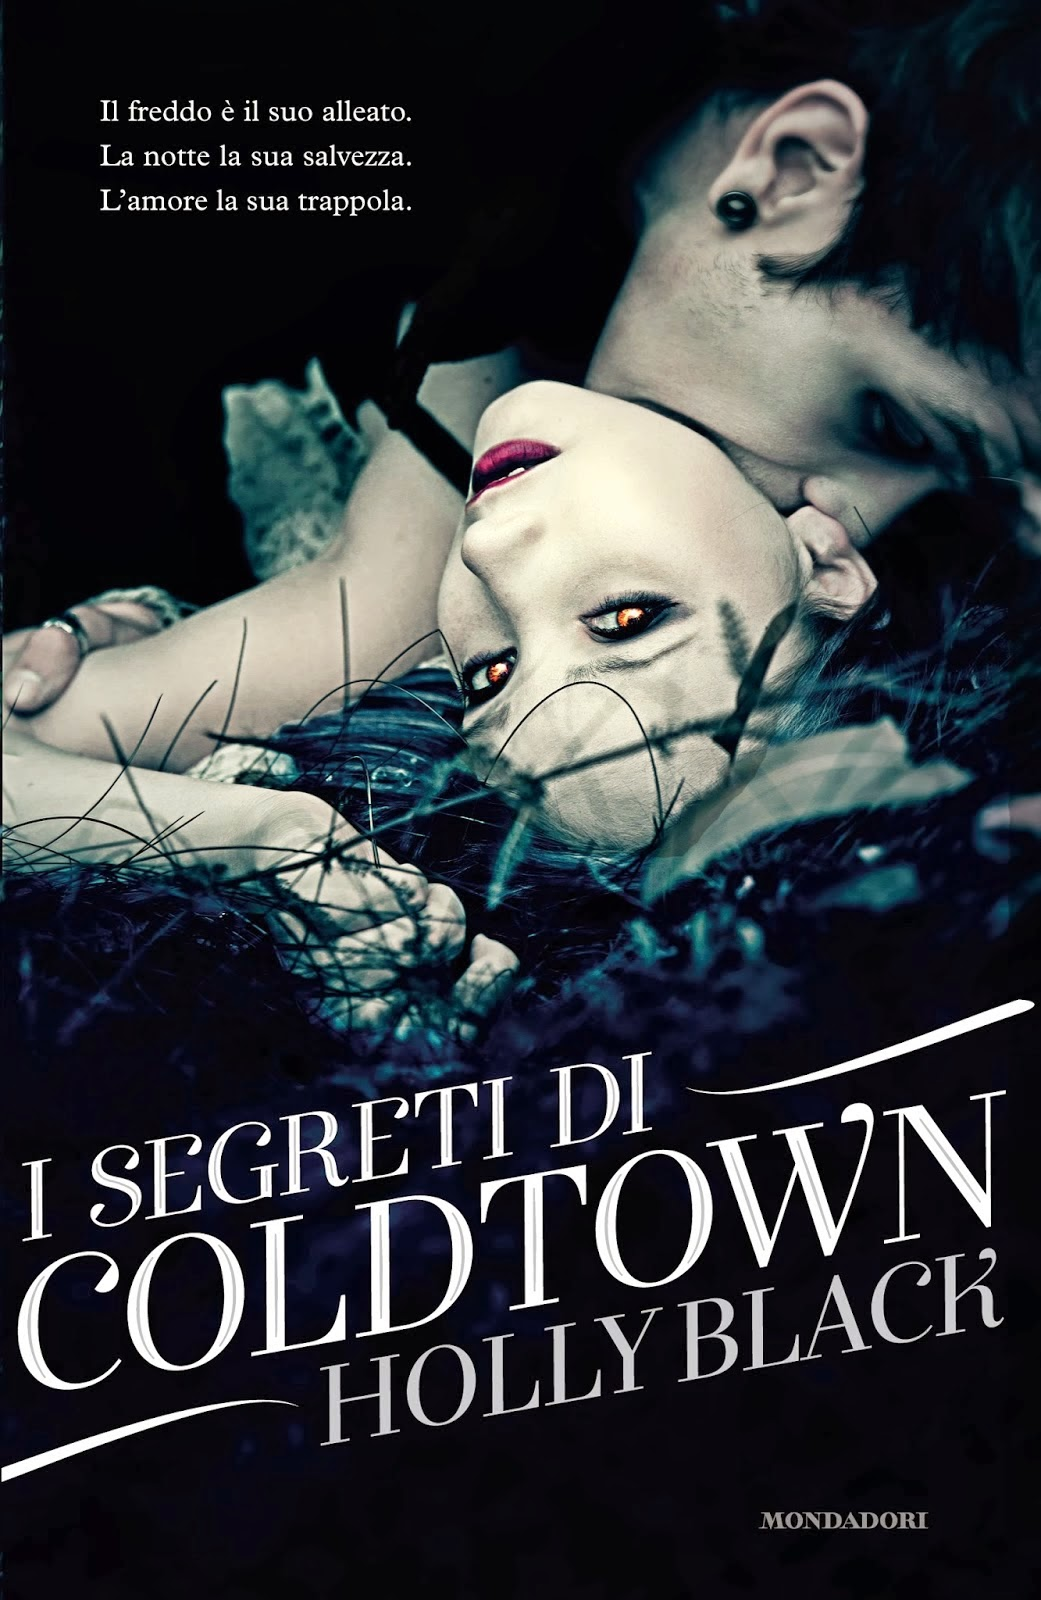 http://thebooklovernargles.blogspot.it/2014/12/mini-recensione-i-segreti-di-coldtown.html